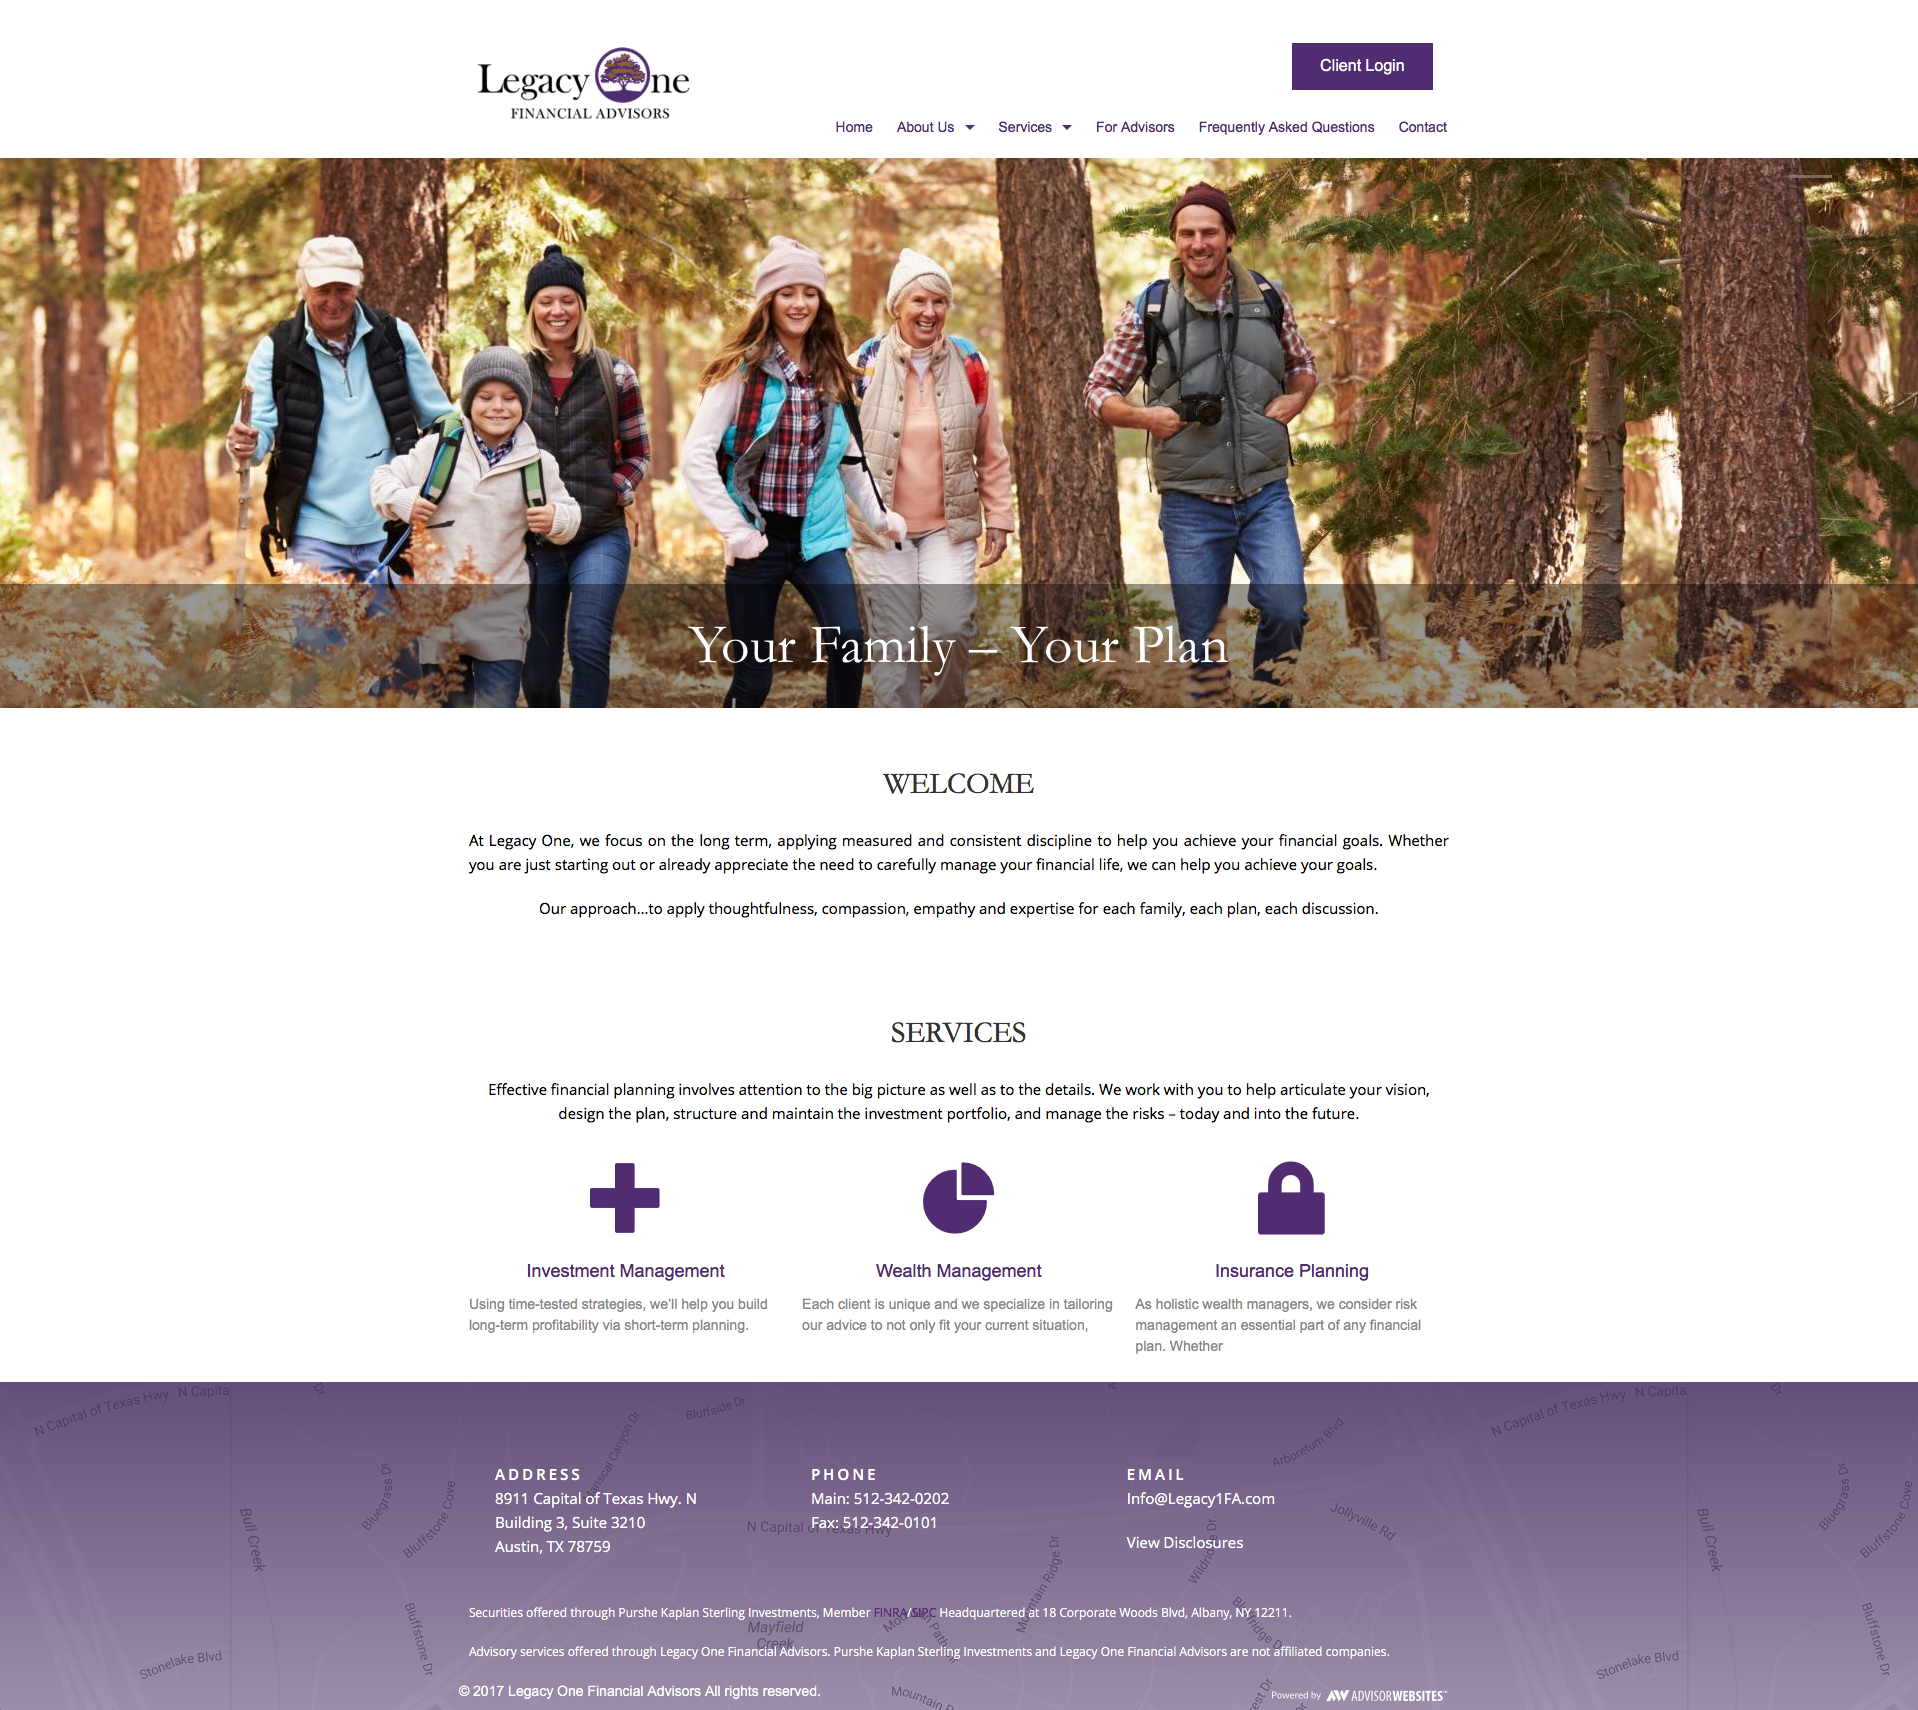 Gallery Examples of websites for Financial Advisors